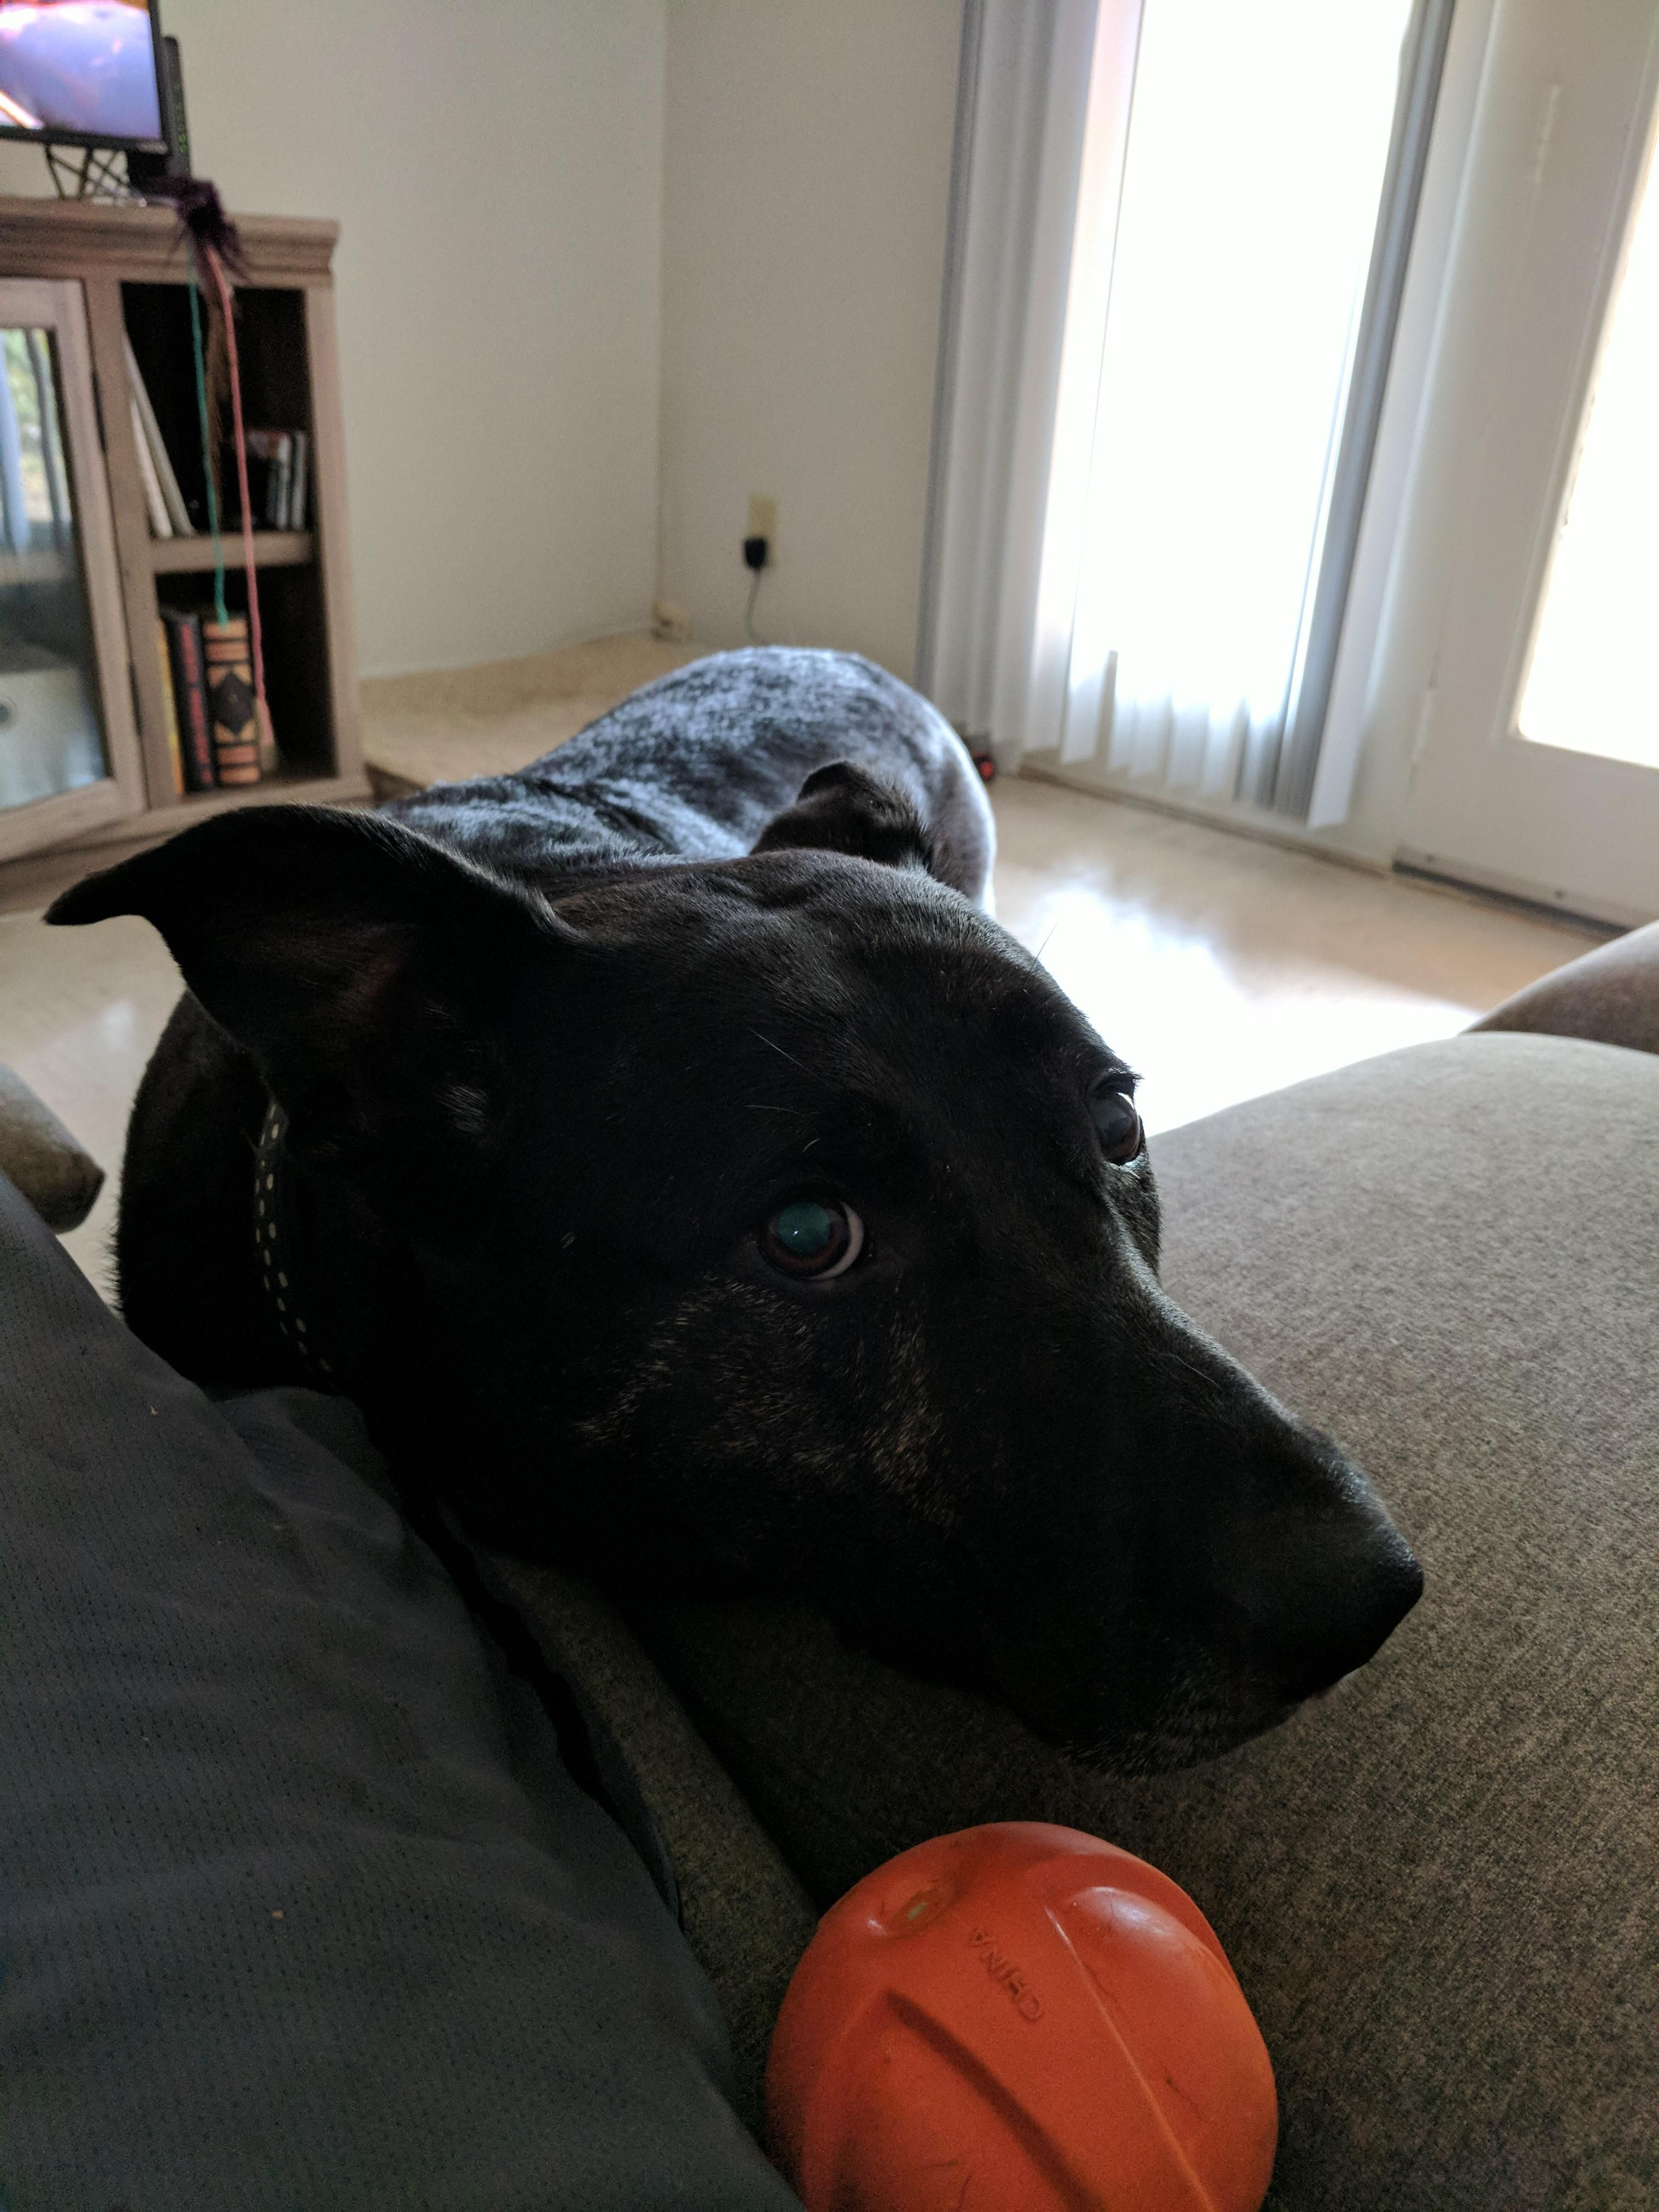 My Doggo Roanoke Being Shy About Her Ball Http Ift Tt 2y8pxl8 With Images Doggo